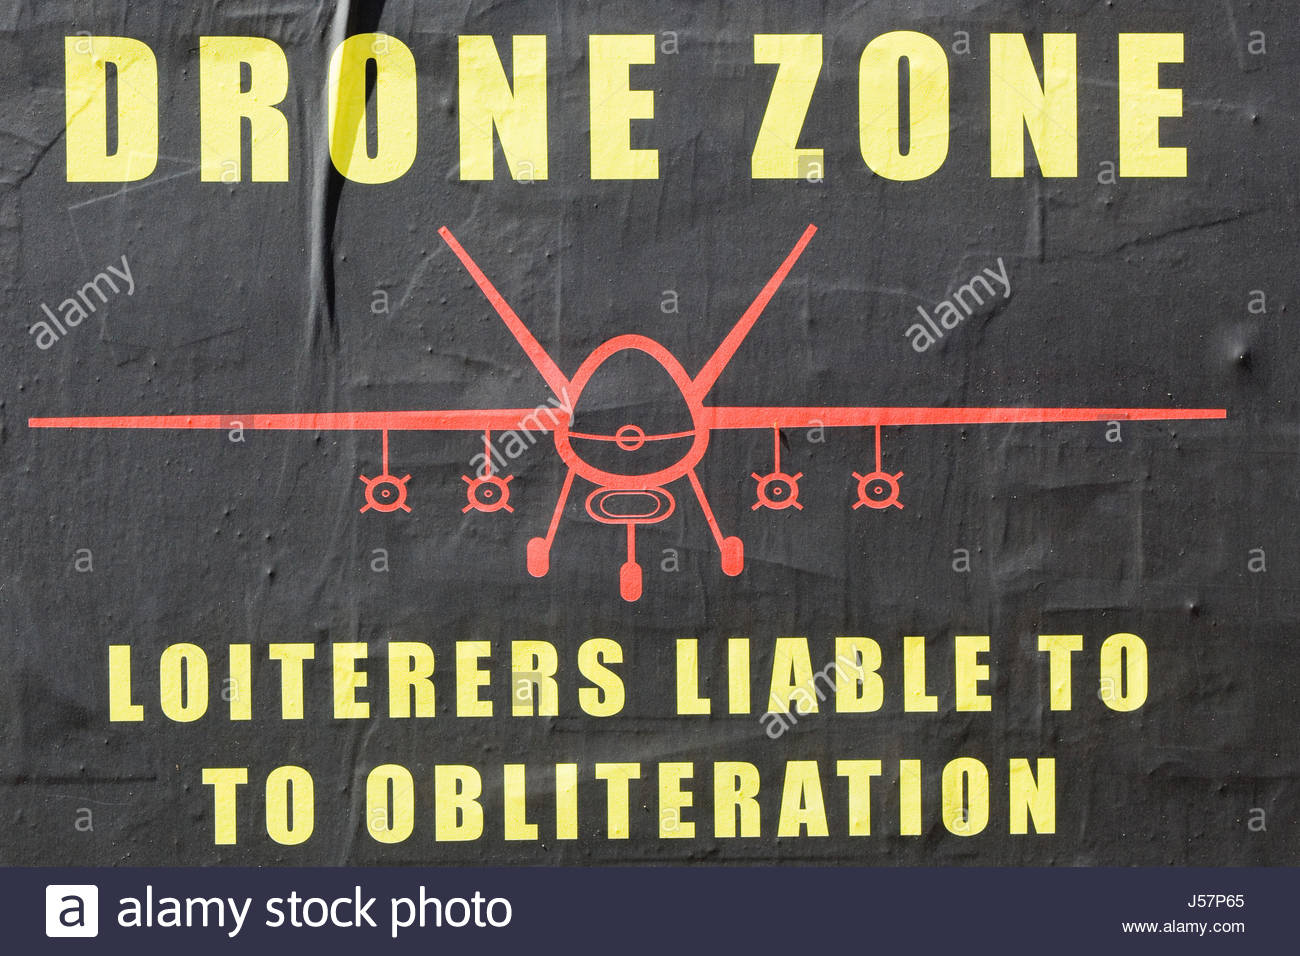 Drone zone, Loiterers liable to Obliteration poster - Stock Image